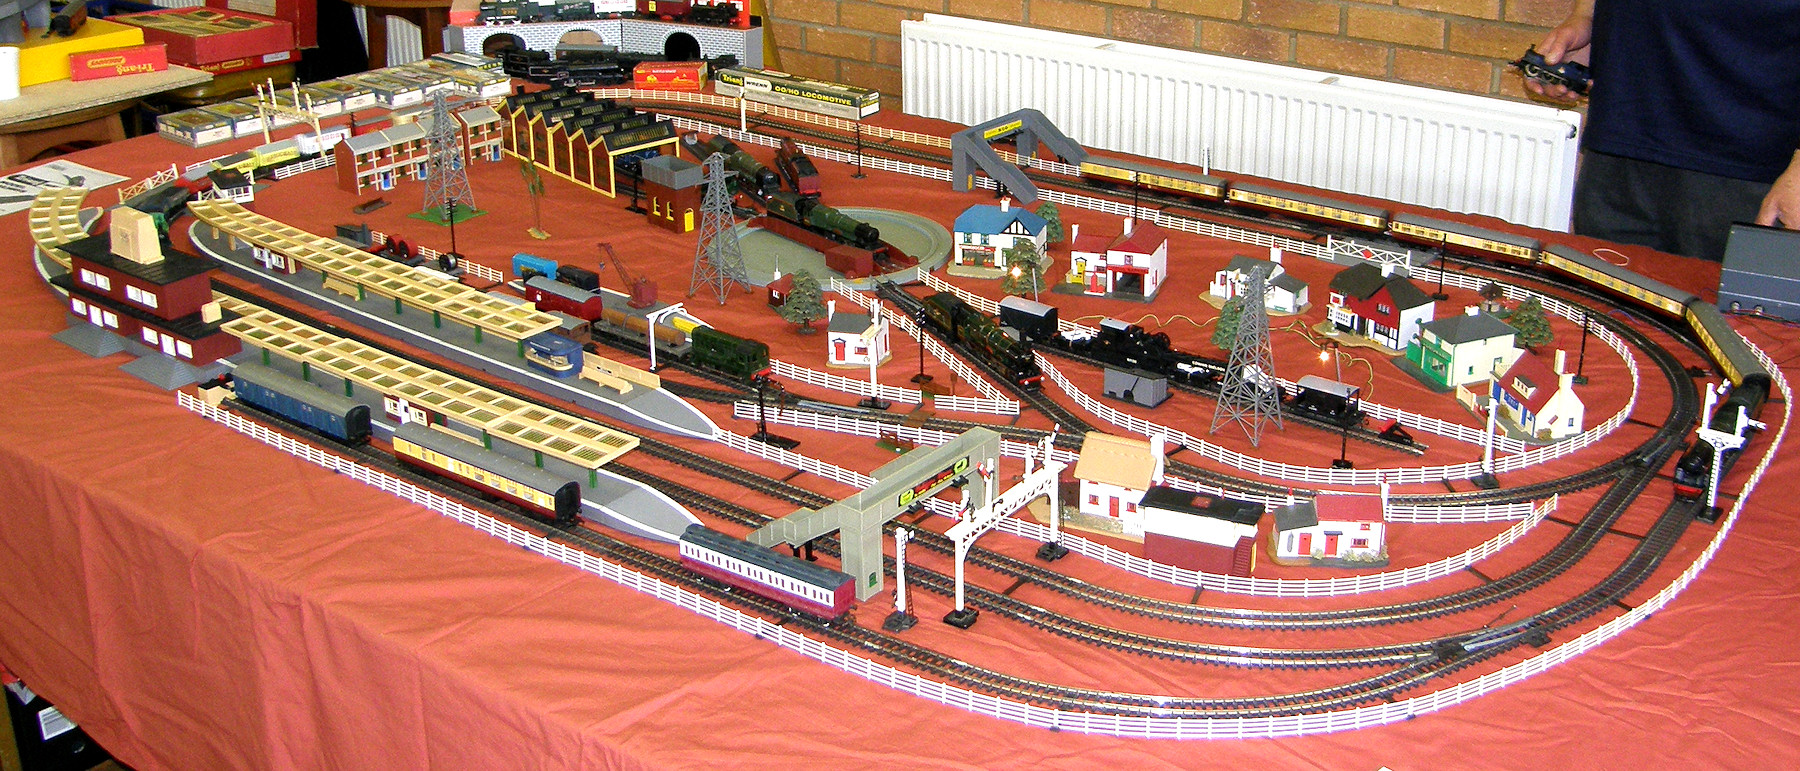 ... displaying the Tri-ang automatic train control with Minic Motorway. He had hair before he tried to get this to work! This is now one of Dave's standard ...